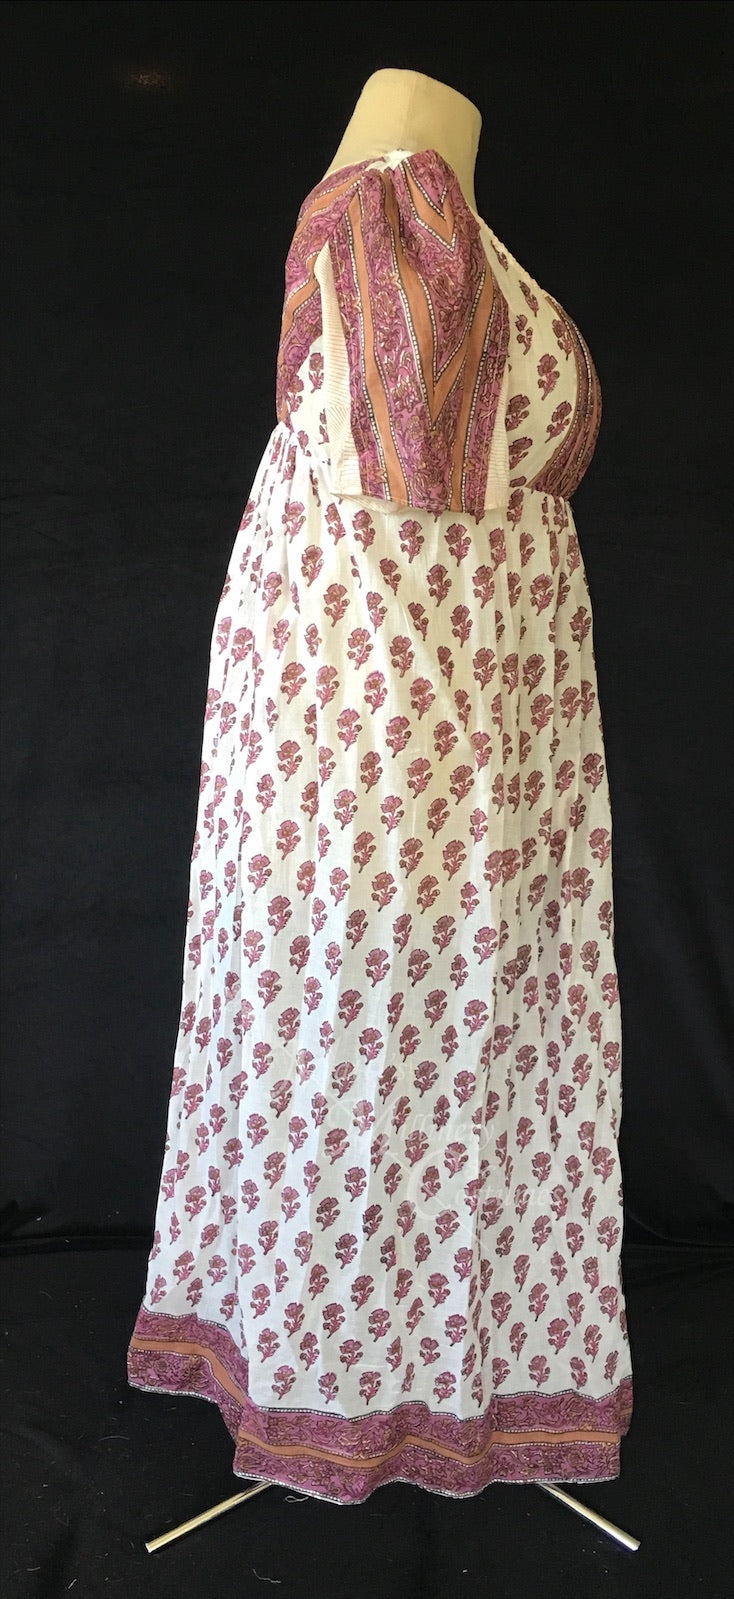 Cotton Sari Regency Day Dress in Mauve Pink